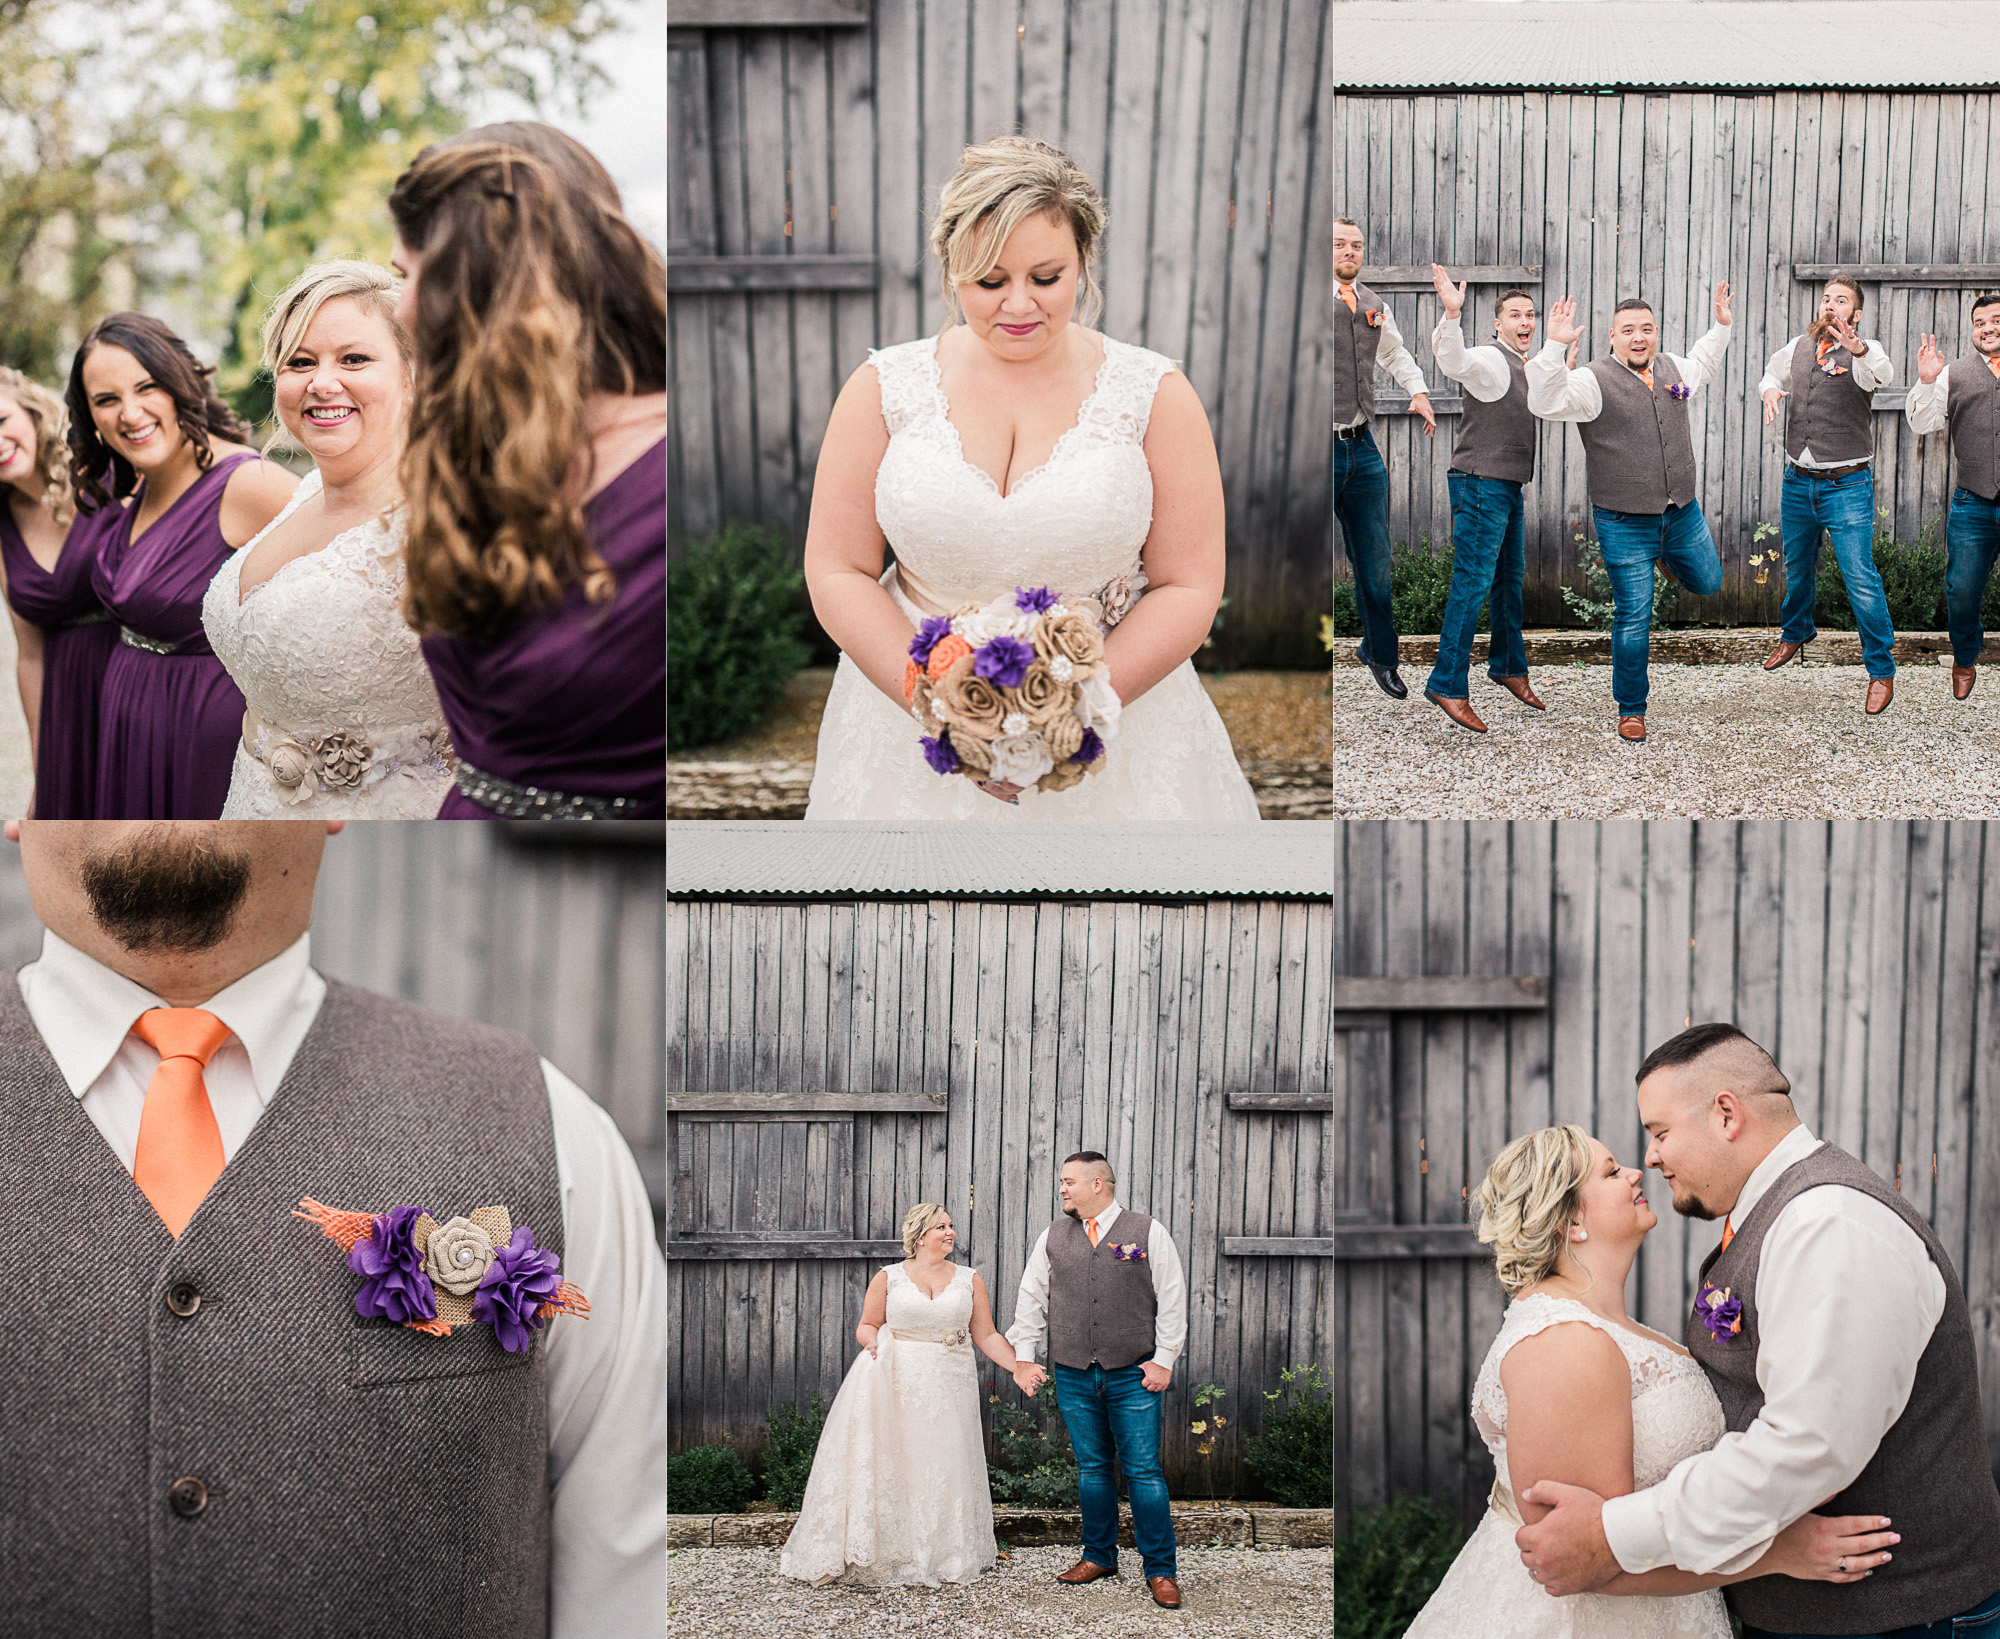 Danica + Will | Fall Wedding at a Rustic Barn in Coatesville, IN | Indianapolis Wedding Photographers